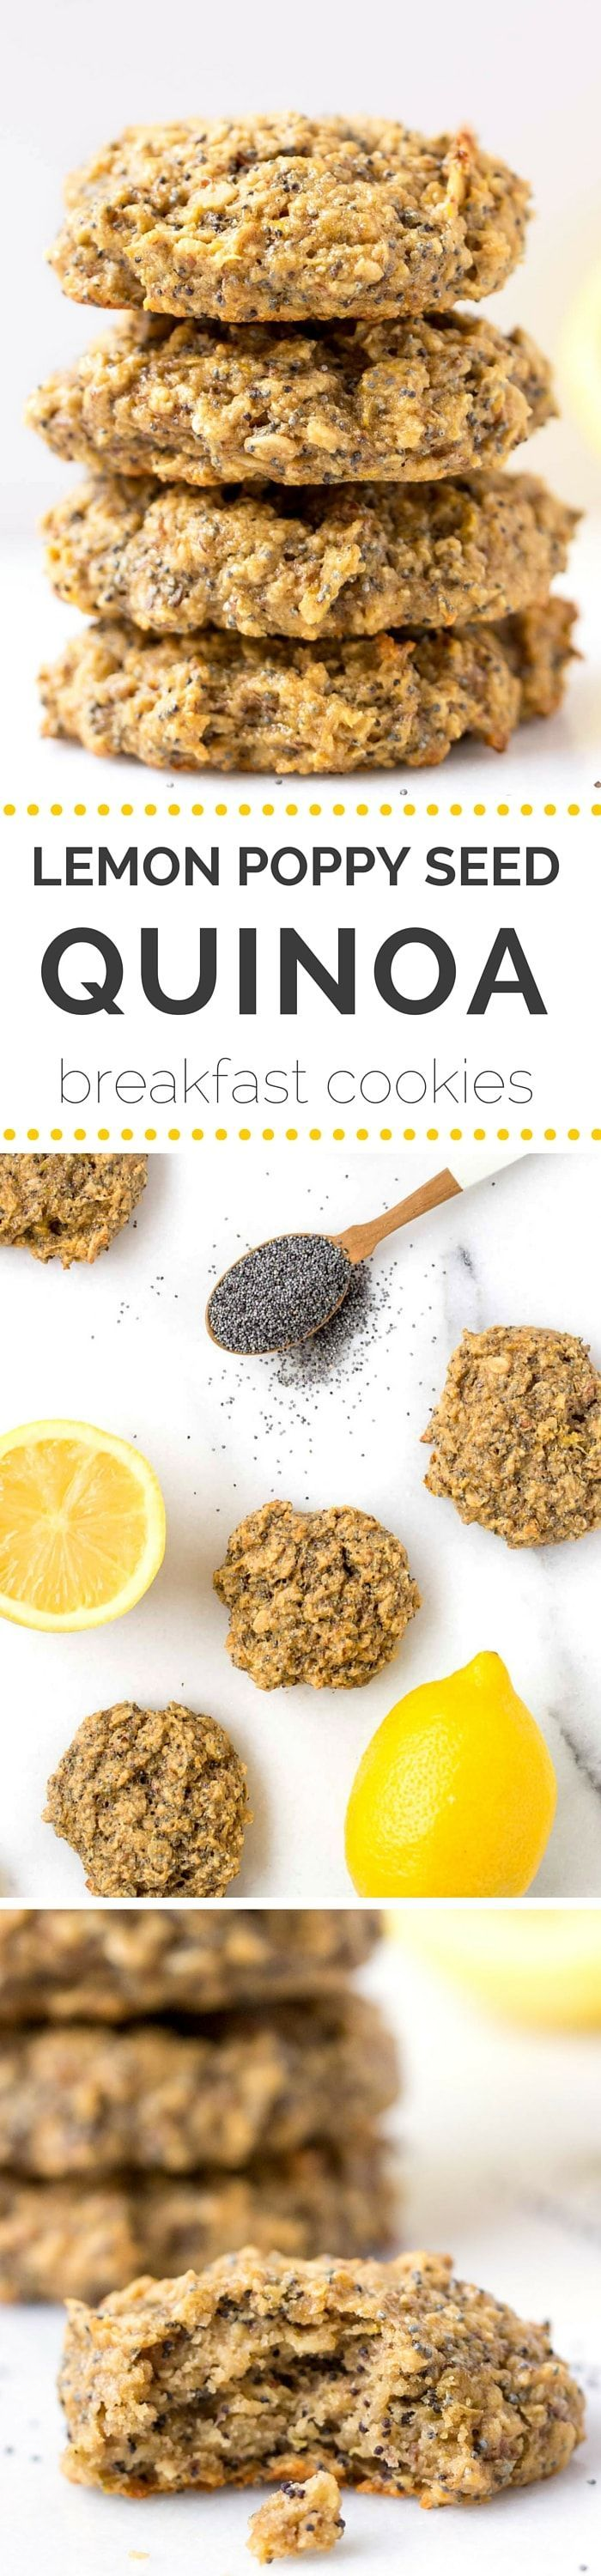 Lemon Poppy Seed Quinoa Breakfast Cookies!! They're simple, healthy, delicious and SO FLAVORFUL!